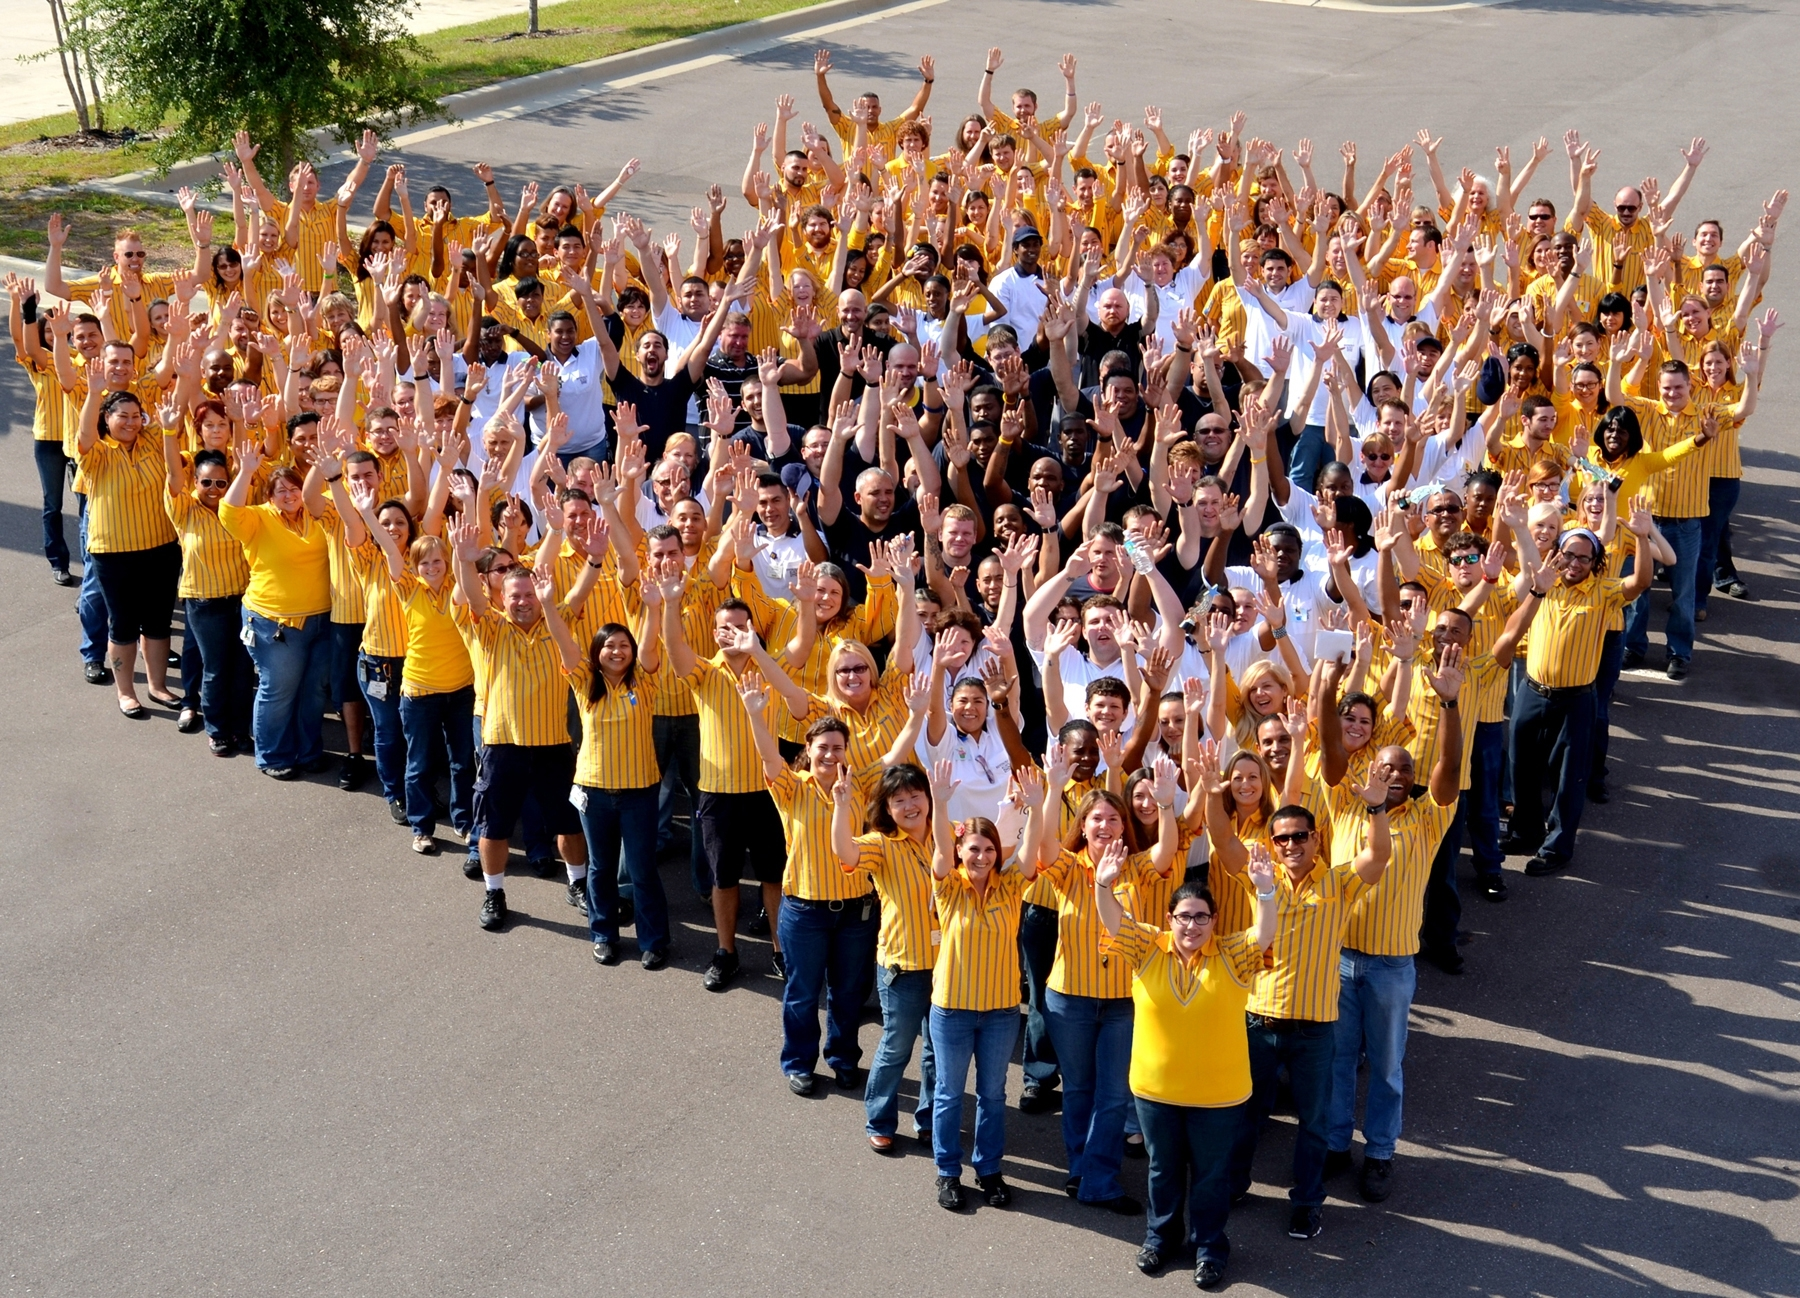 IKEA Seeking 250 Coworkers To Join Swedish Family At Fishers, Indiana Store Opening Fall 2017 (Photo: Business Wire)